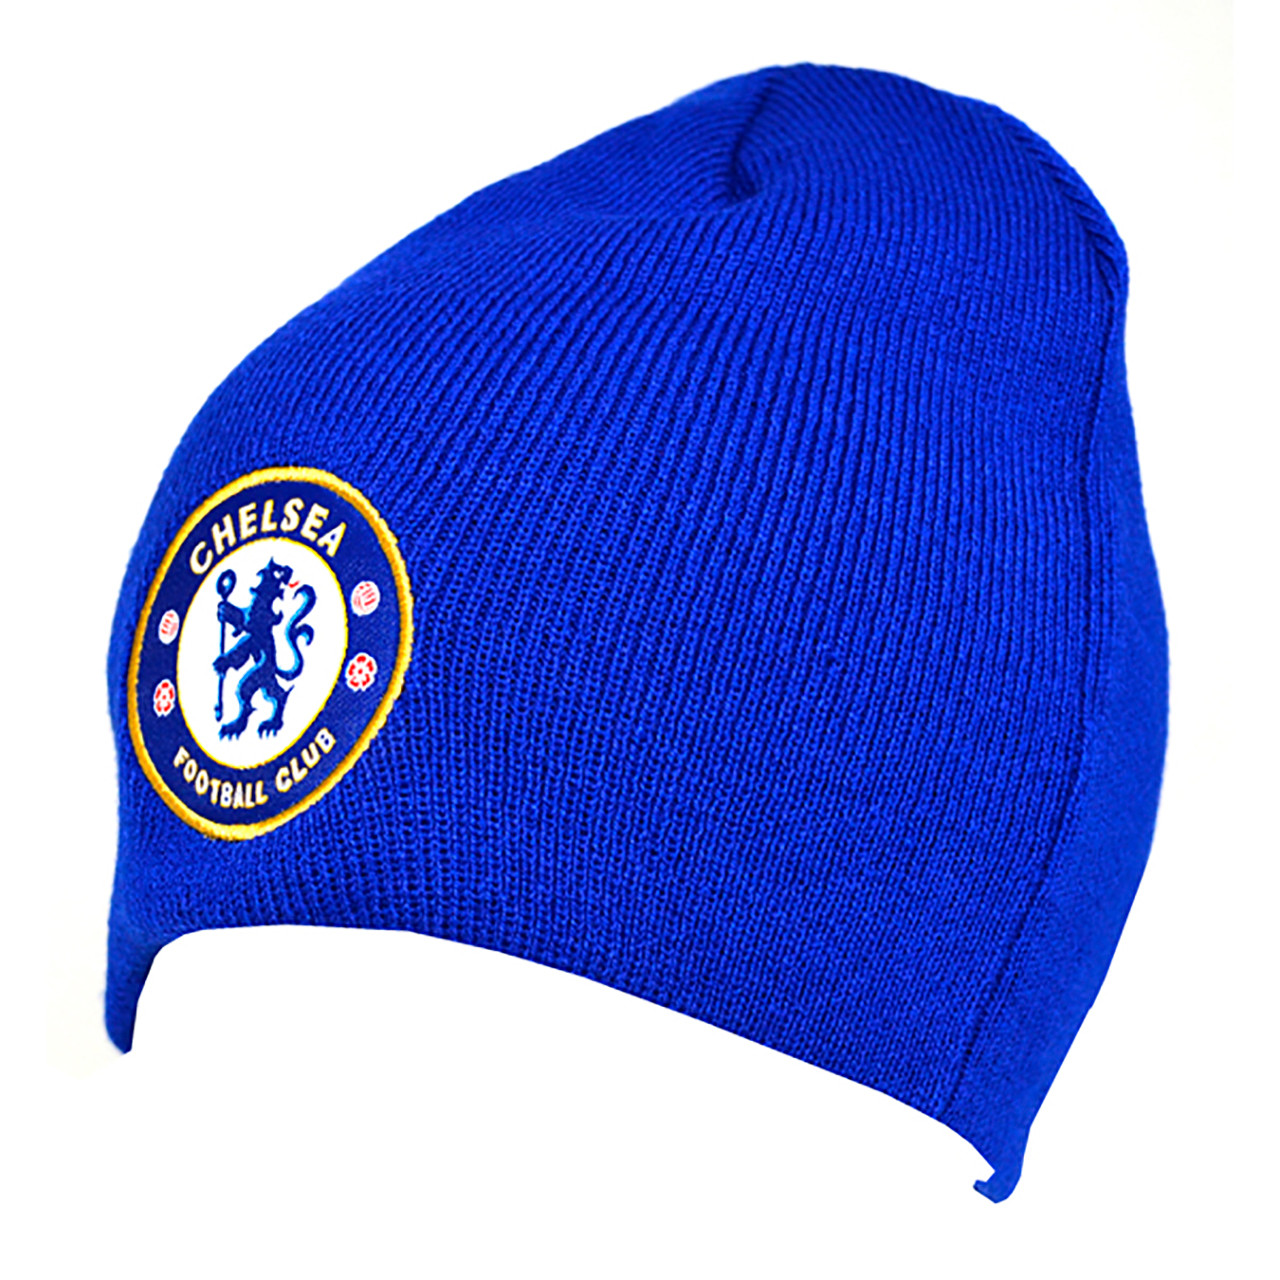 07cb4e74c CHELSEA FC ROYAL Official Beanie Hat